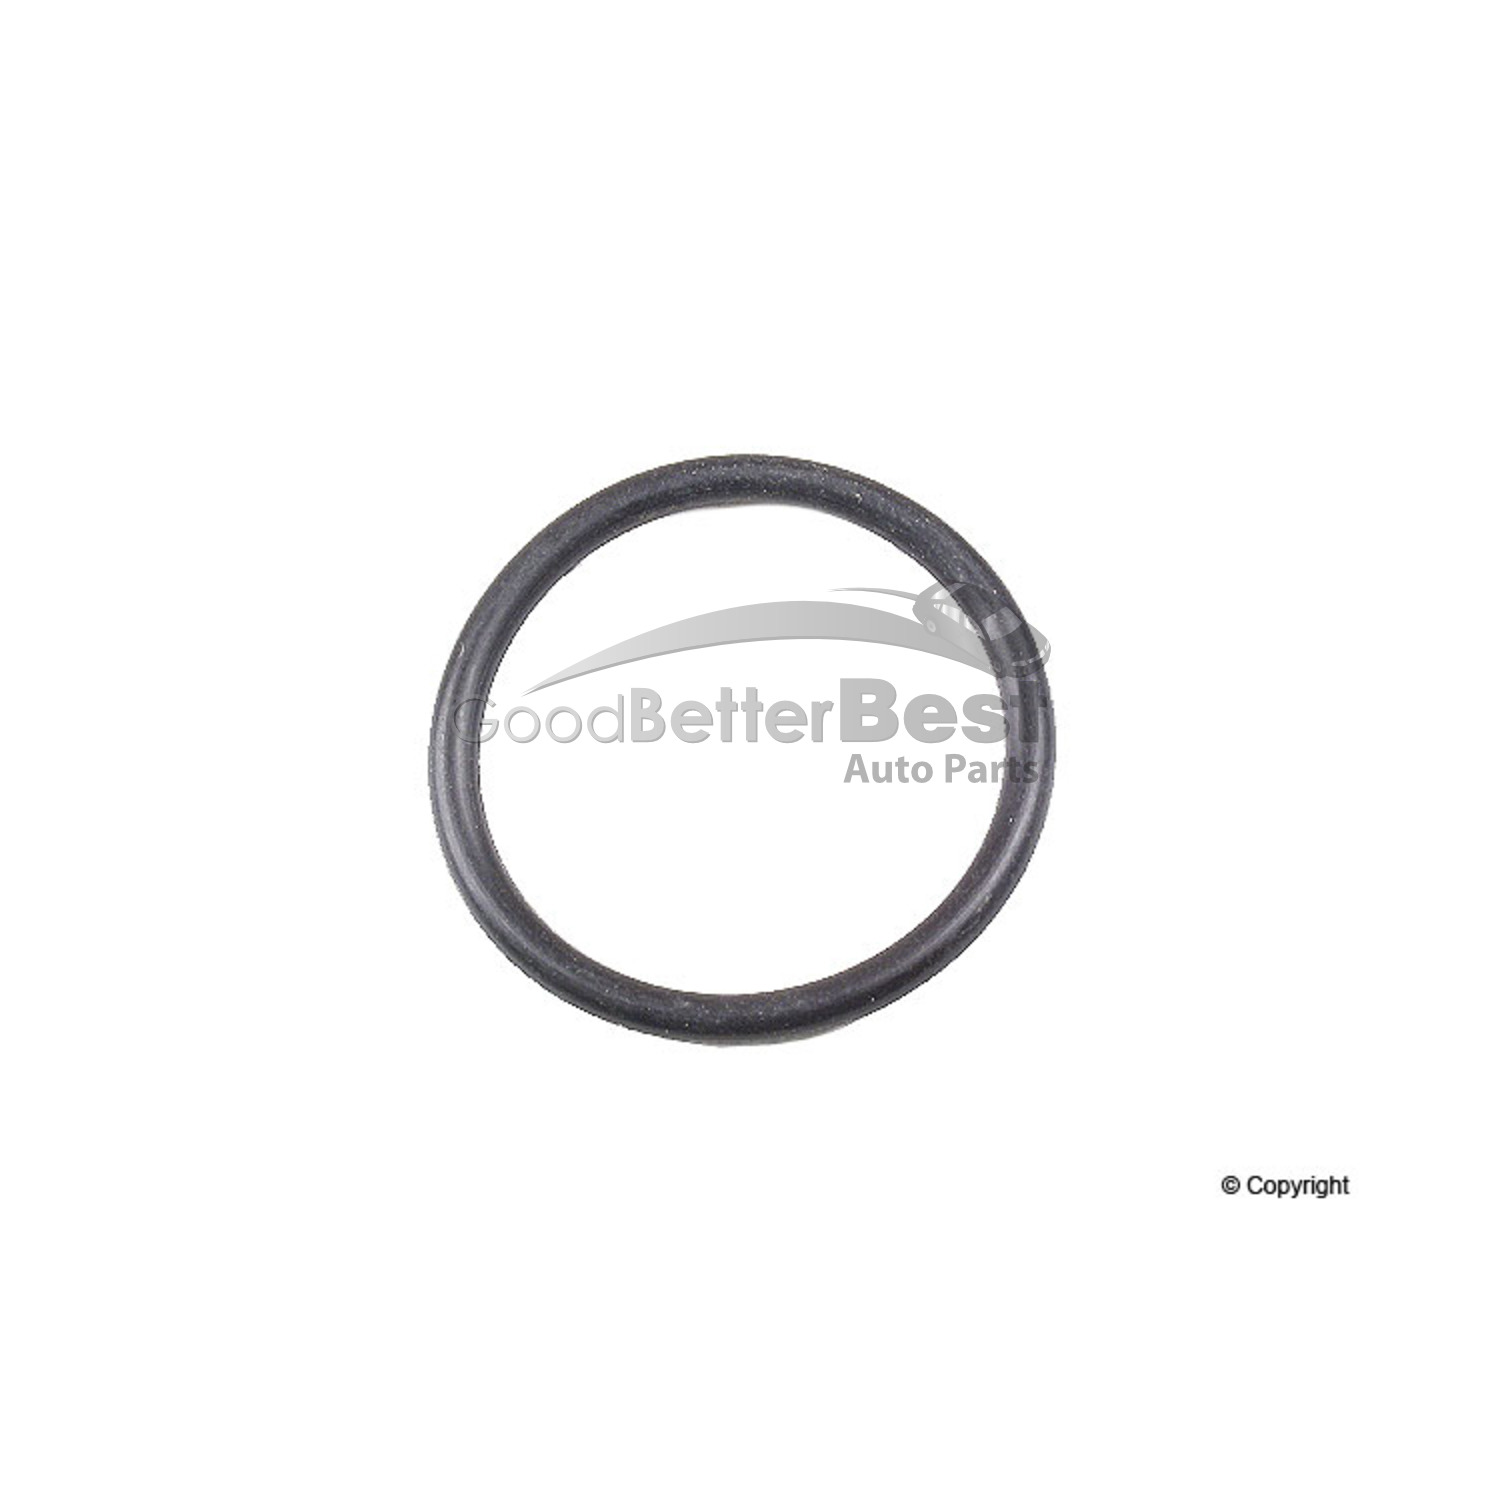 New Crp Automatic Transmission Reaction Valve Seal